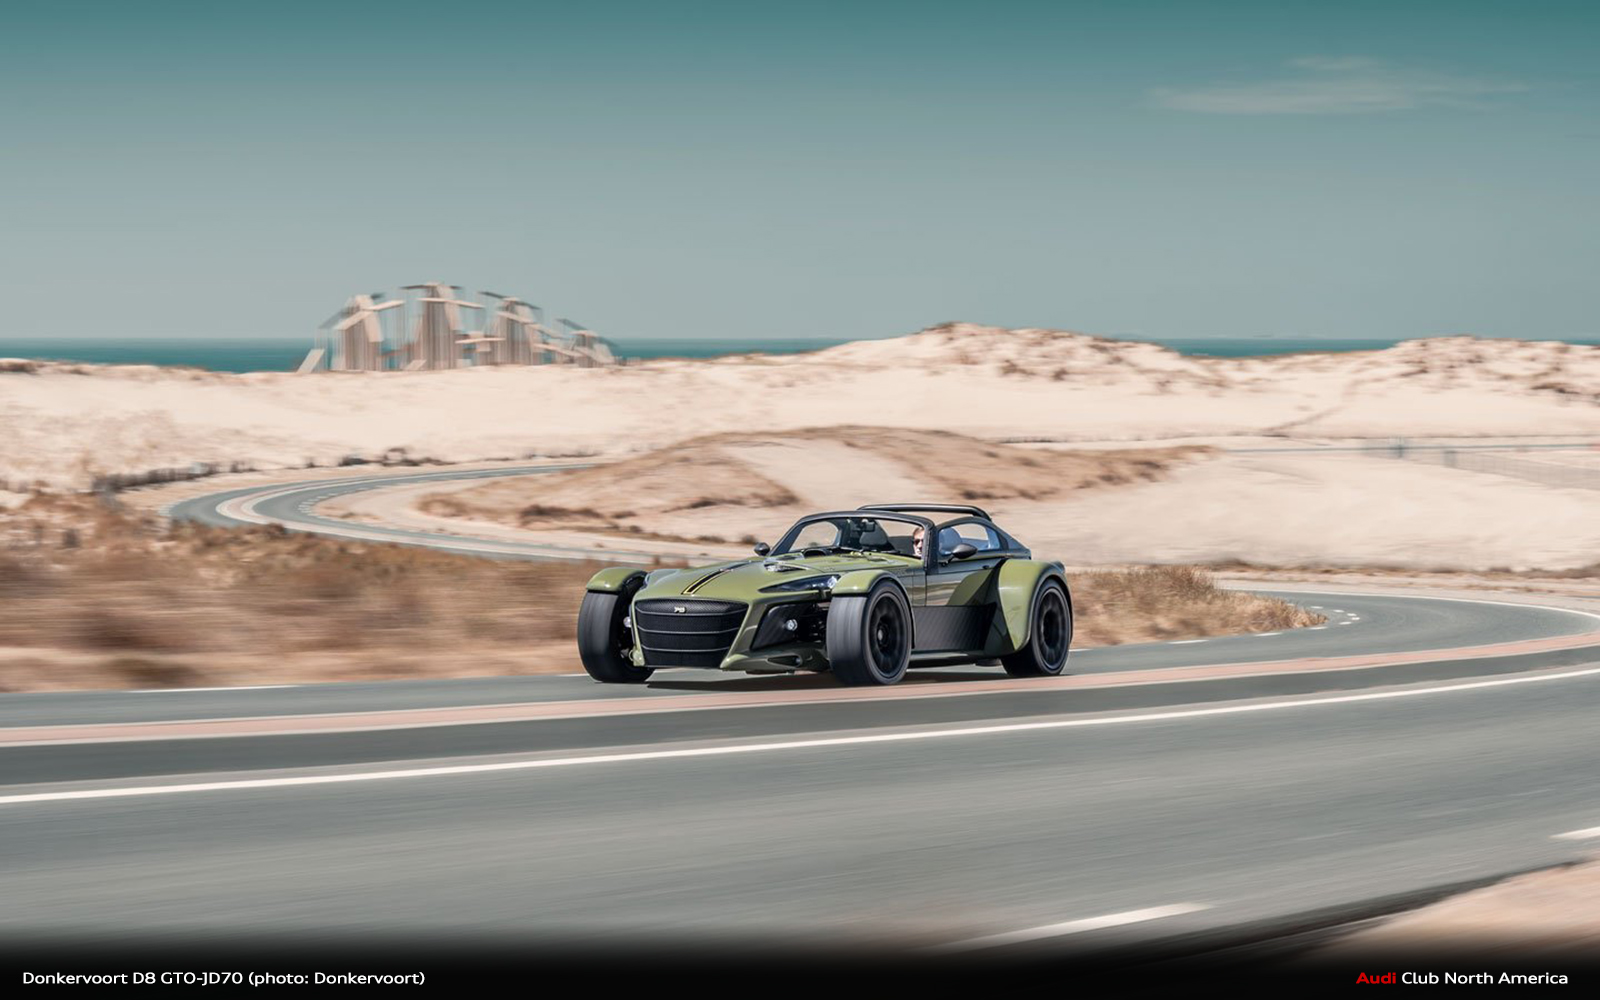 Donkervoort D8 GTO-JD70: The First 2G Super Sports Car